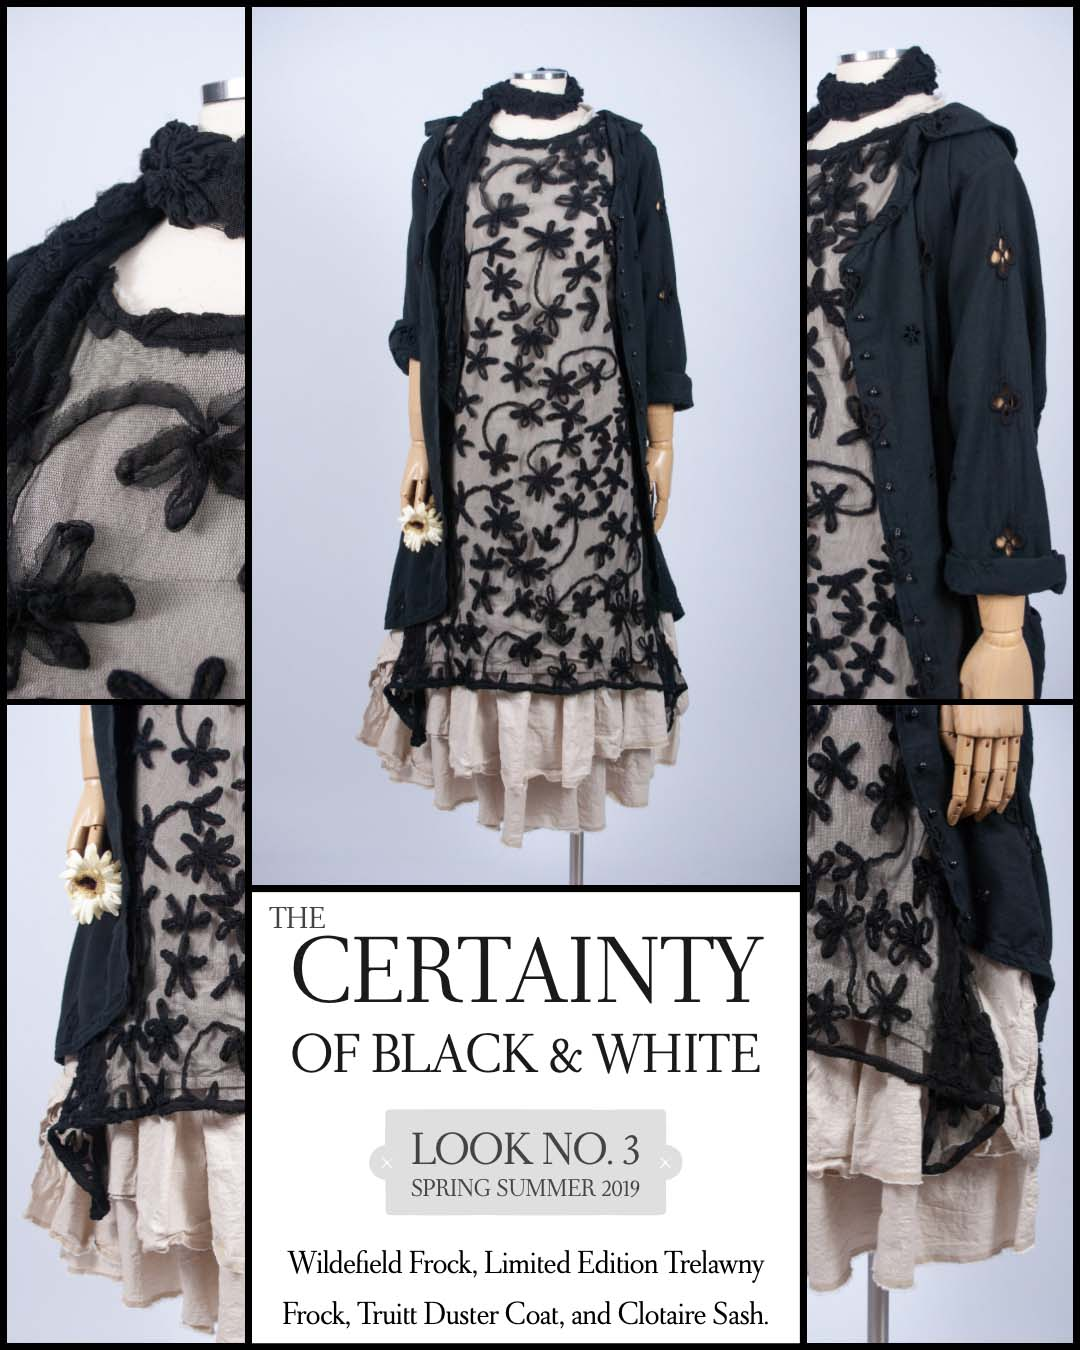 Certainty of Black and White. Spring ushers in a feeling of newness, though it is familiar and happens every year. We can always count on a new season. Such dependability comes in shades of black and white, giving us a sense of certainty no other hues can—especially in these easy fitting design and fabric combinations.